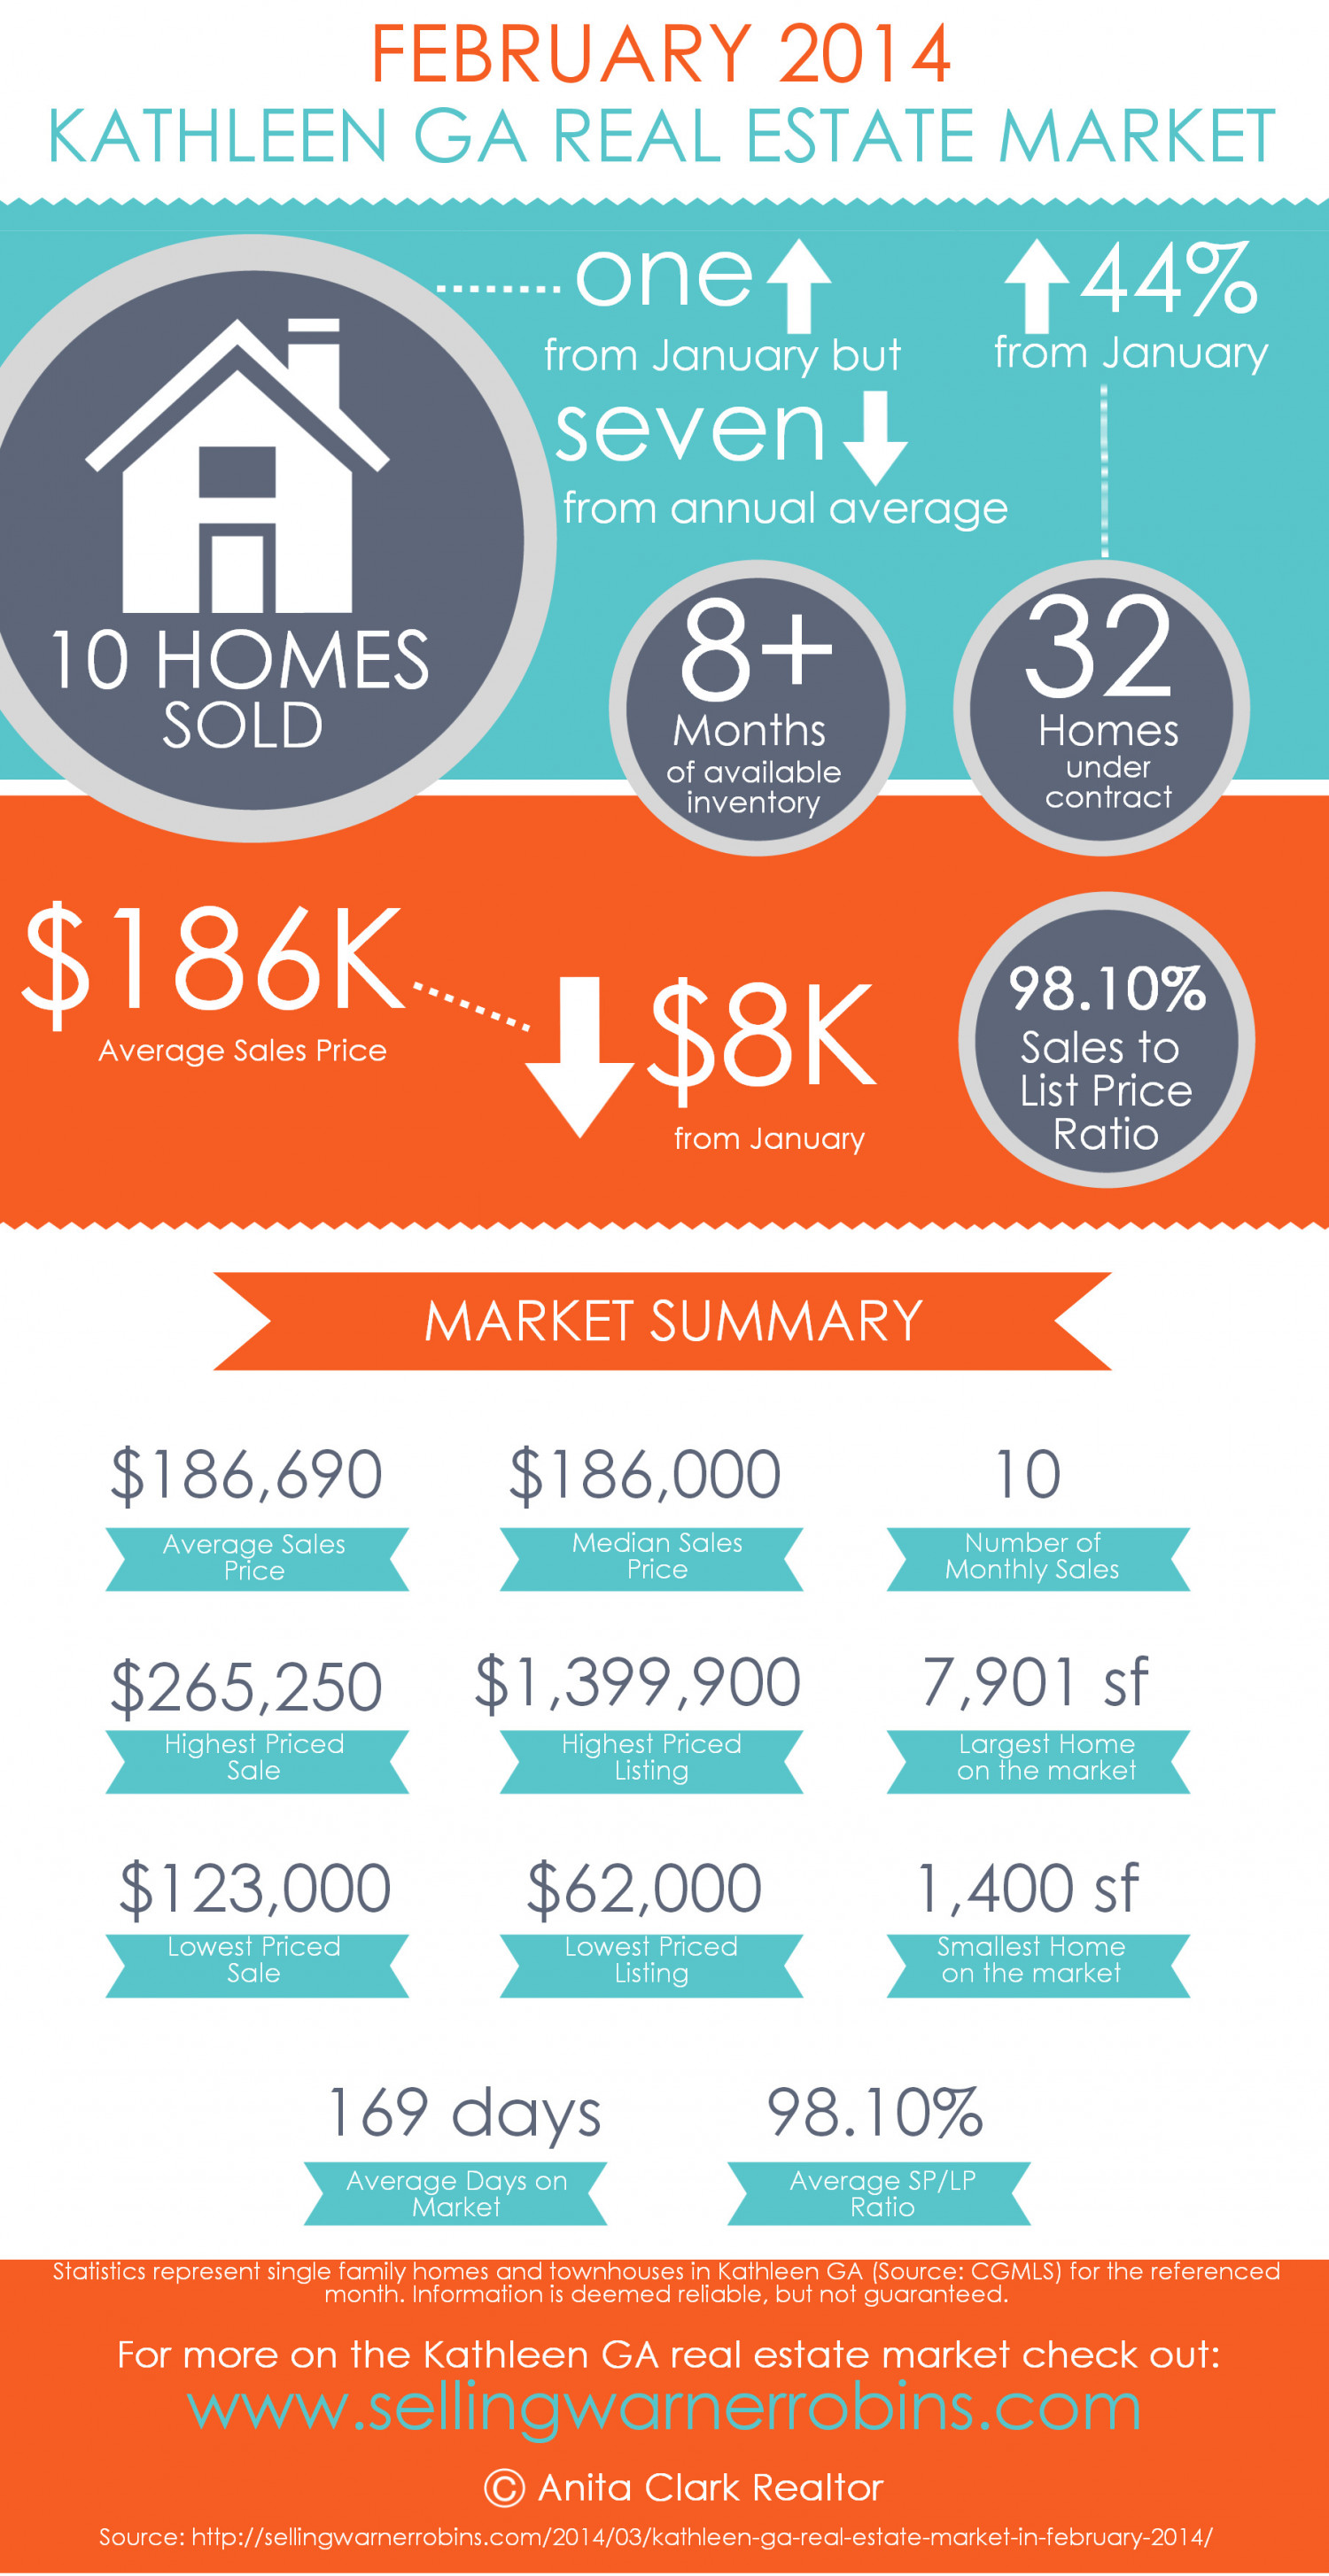 Kathleen GA Real Estate Market in February 2014 Infographic